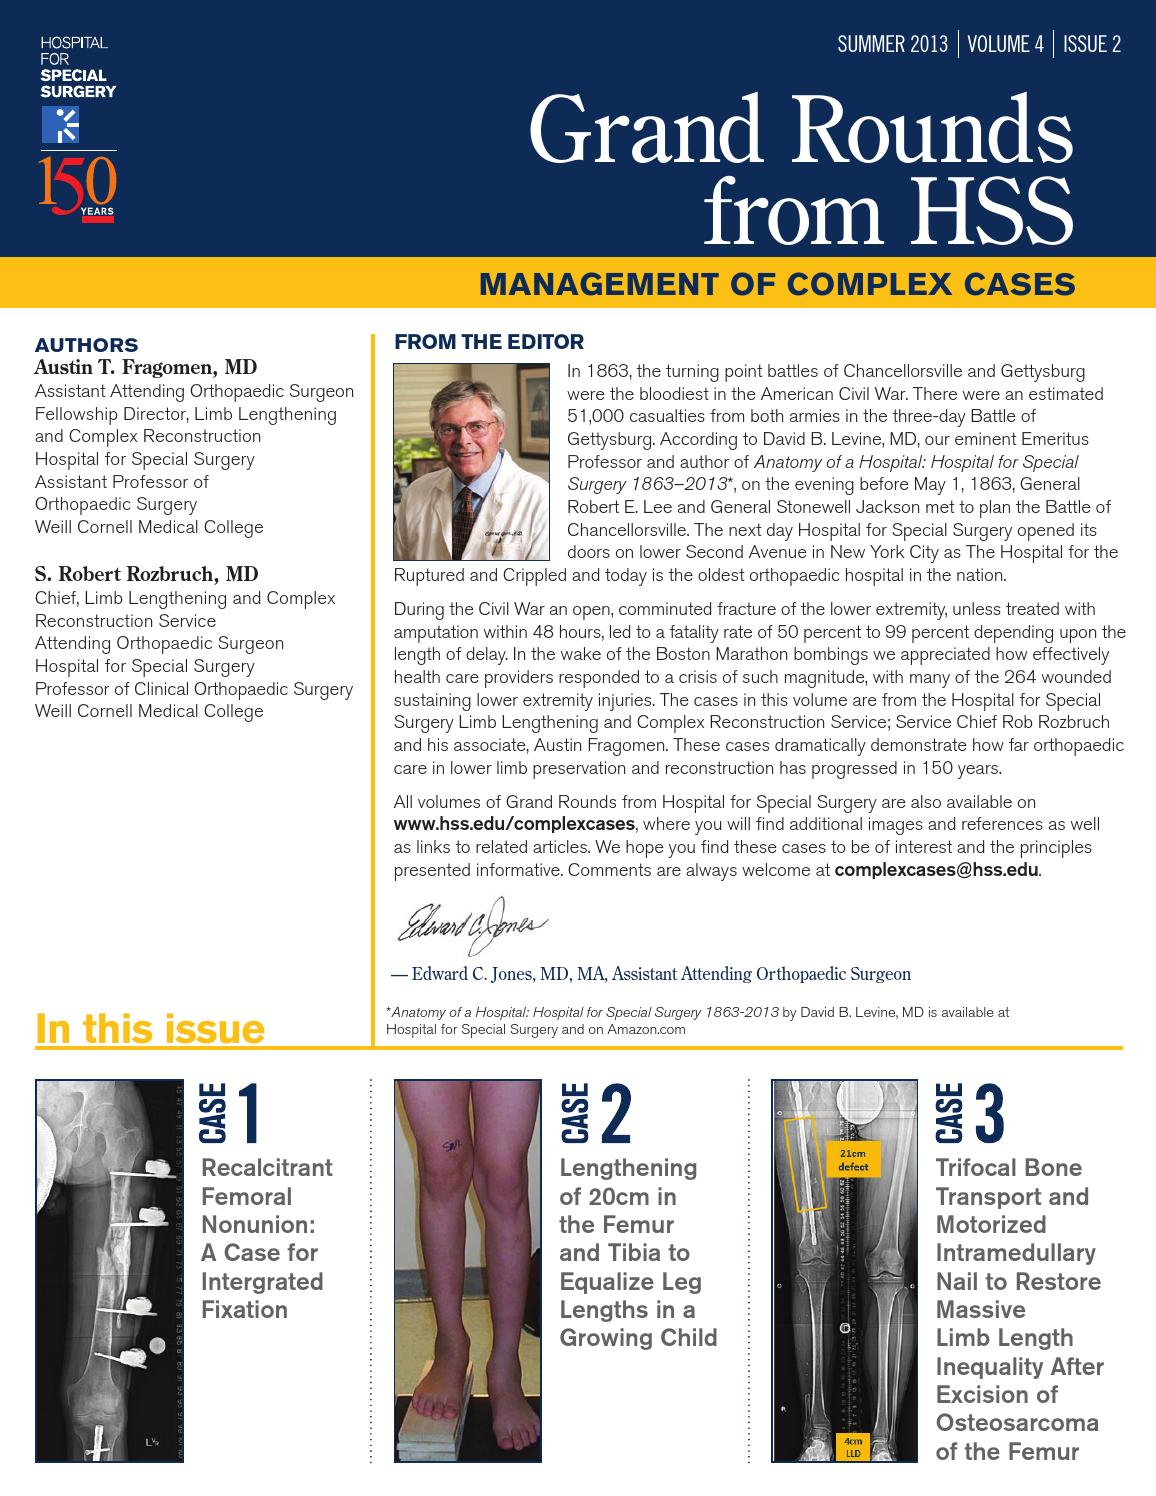 Grand Rounds - Management of Complex Cases - Summer 2013